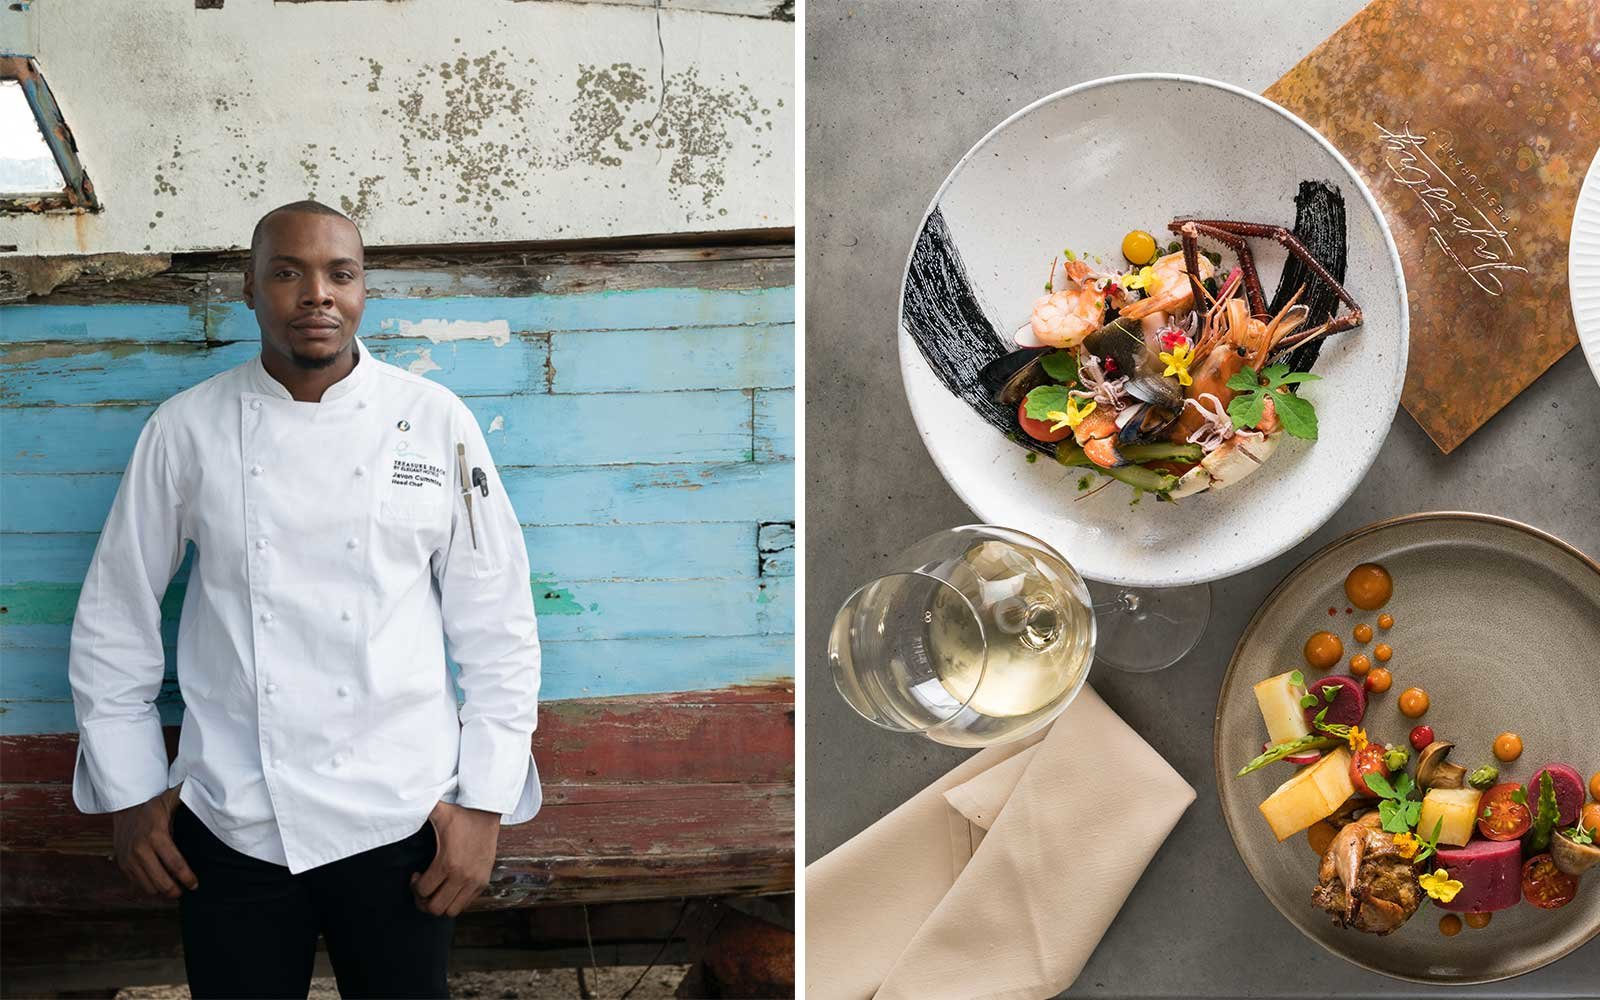 Chef Javon Cummins and colorful dishes from his restaurant Tapestry, in Barbados